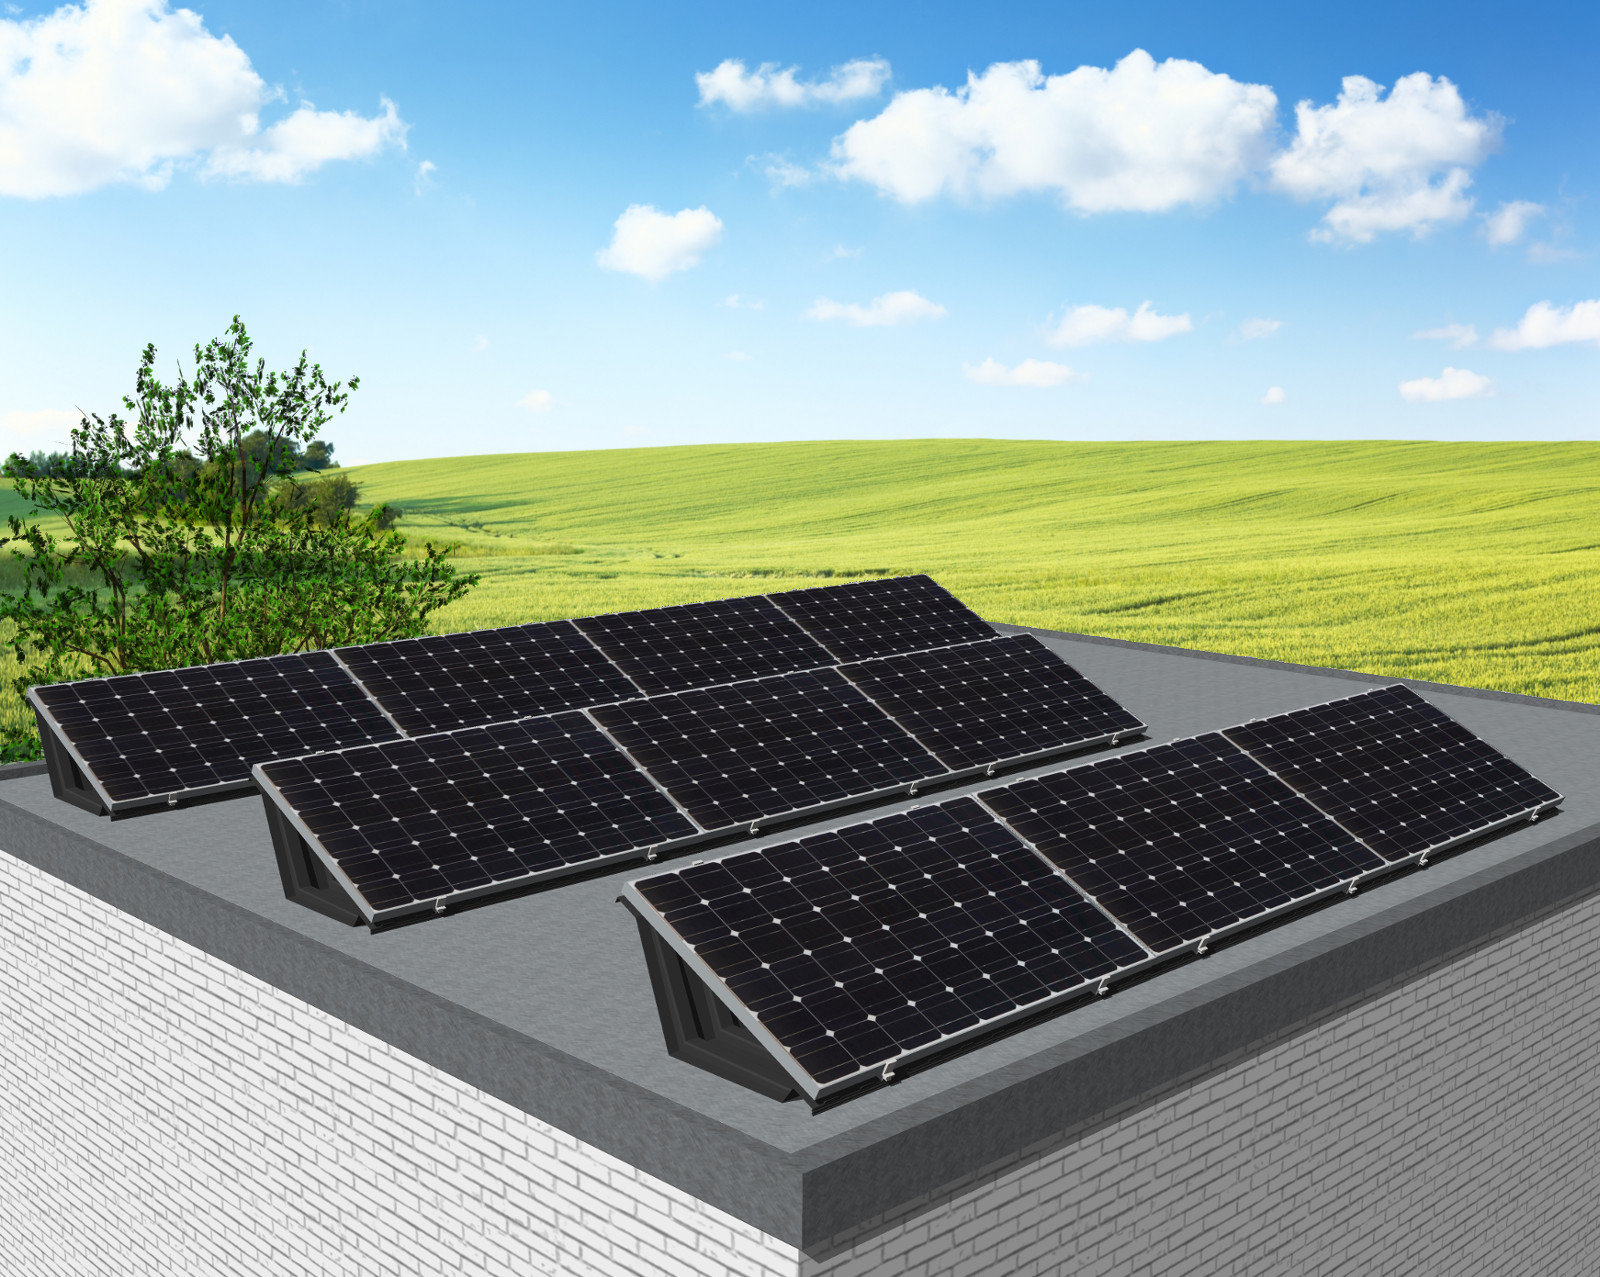 "myCleantech-Solar.org™ - Komplett Solaranlage Flachdach 810 - 6'168 WattP ""Einfache Selbstmontage - do it yourself"" oder Aufbau durch unsere Fachleute ab... K20180715-03 - Let's developp your renewable project togheter"